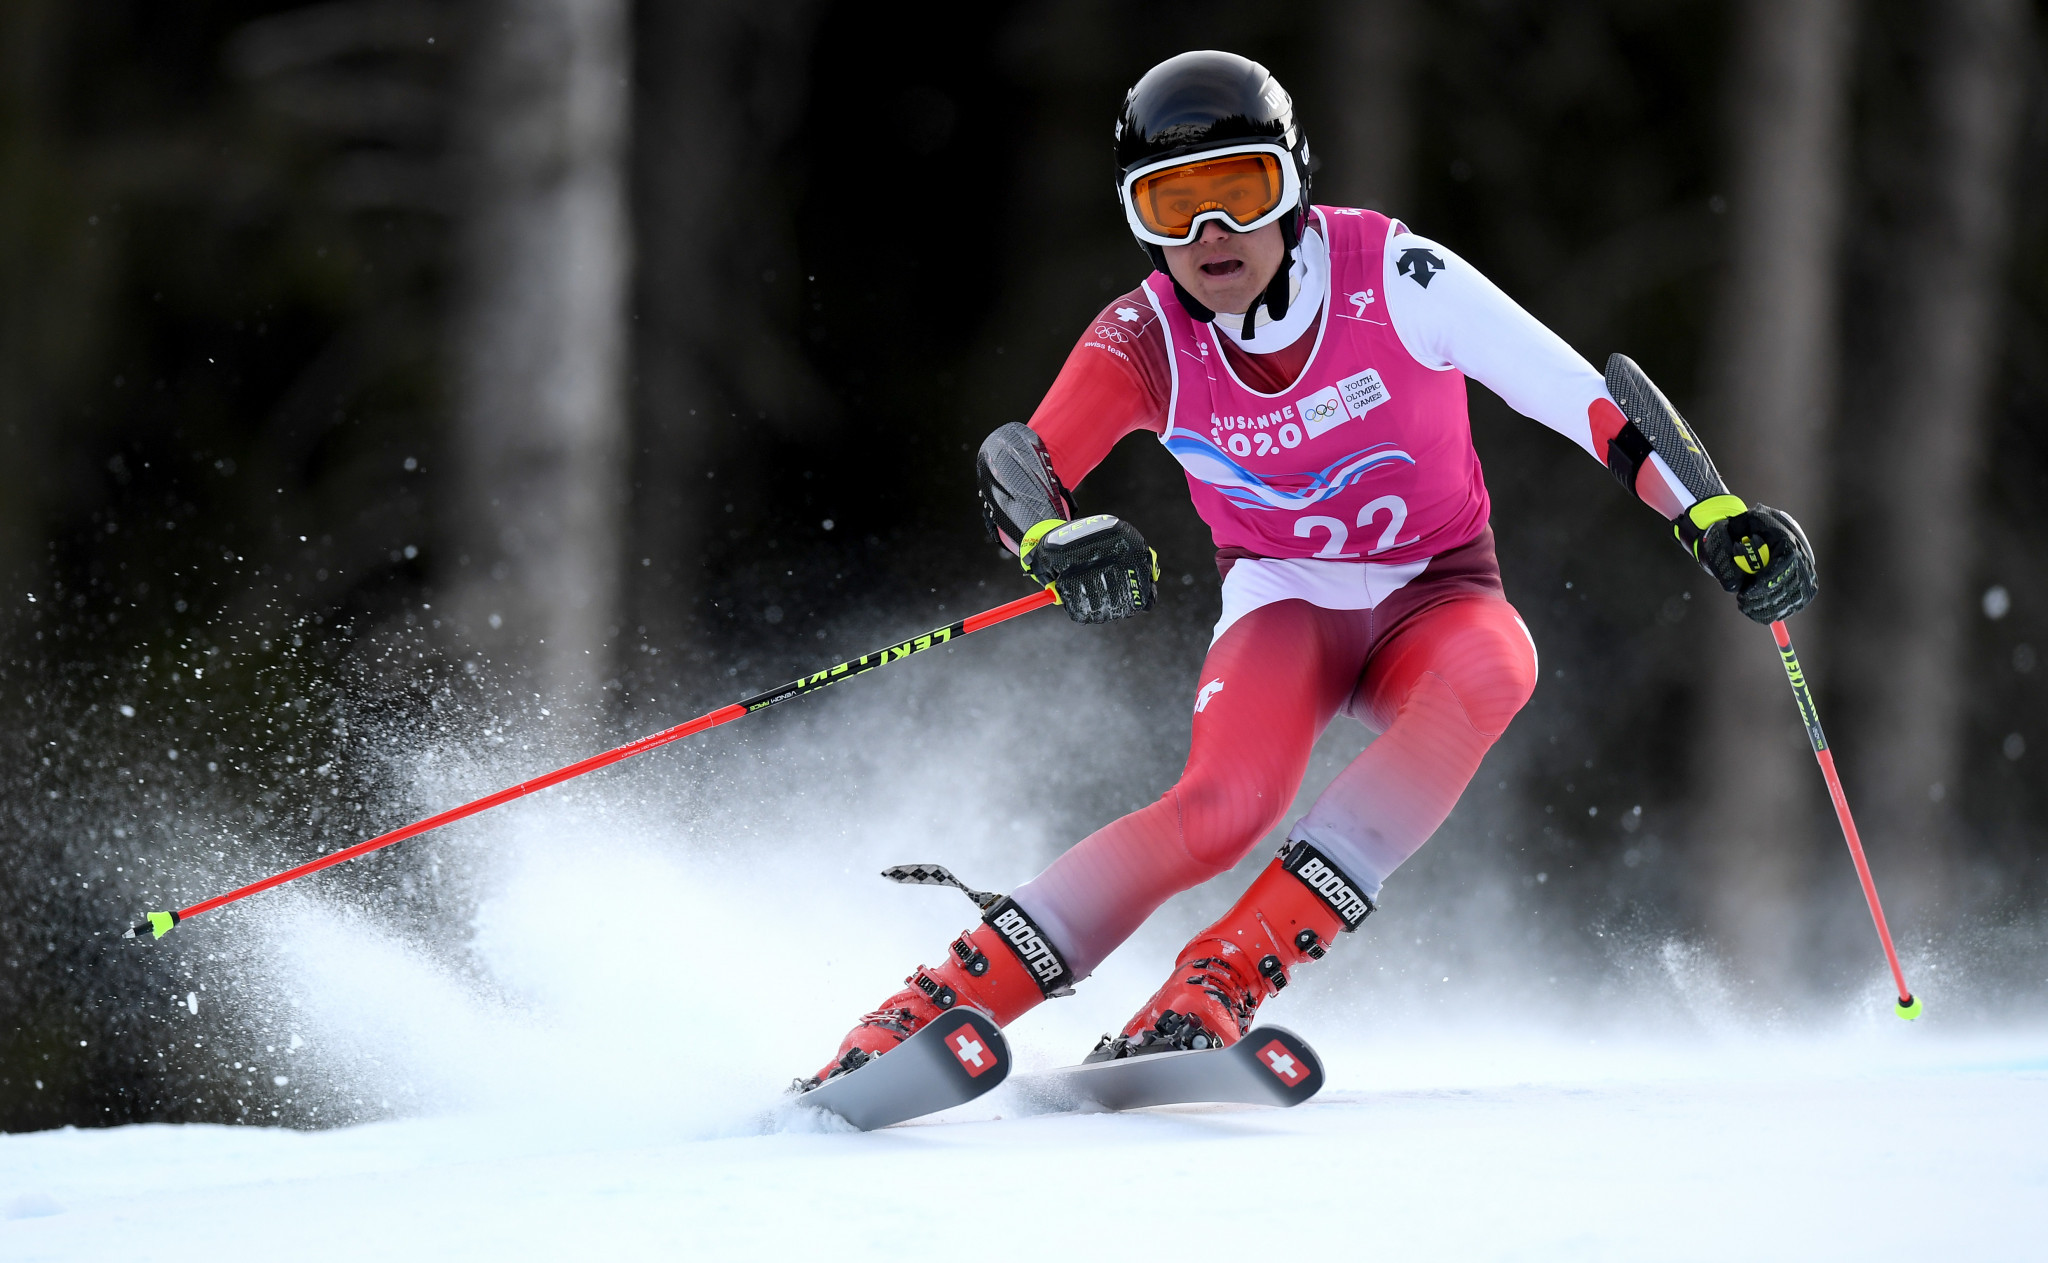 Switzerland's Sandro Zurbruegg finished as the runner-up ©Getty Images